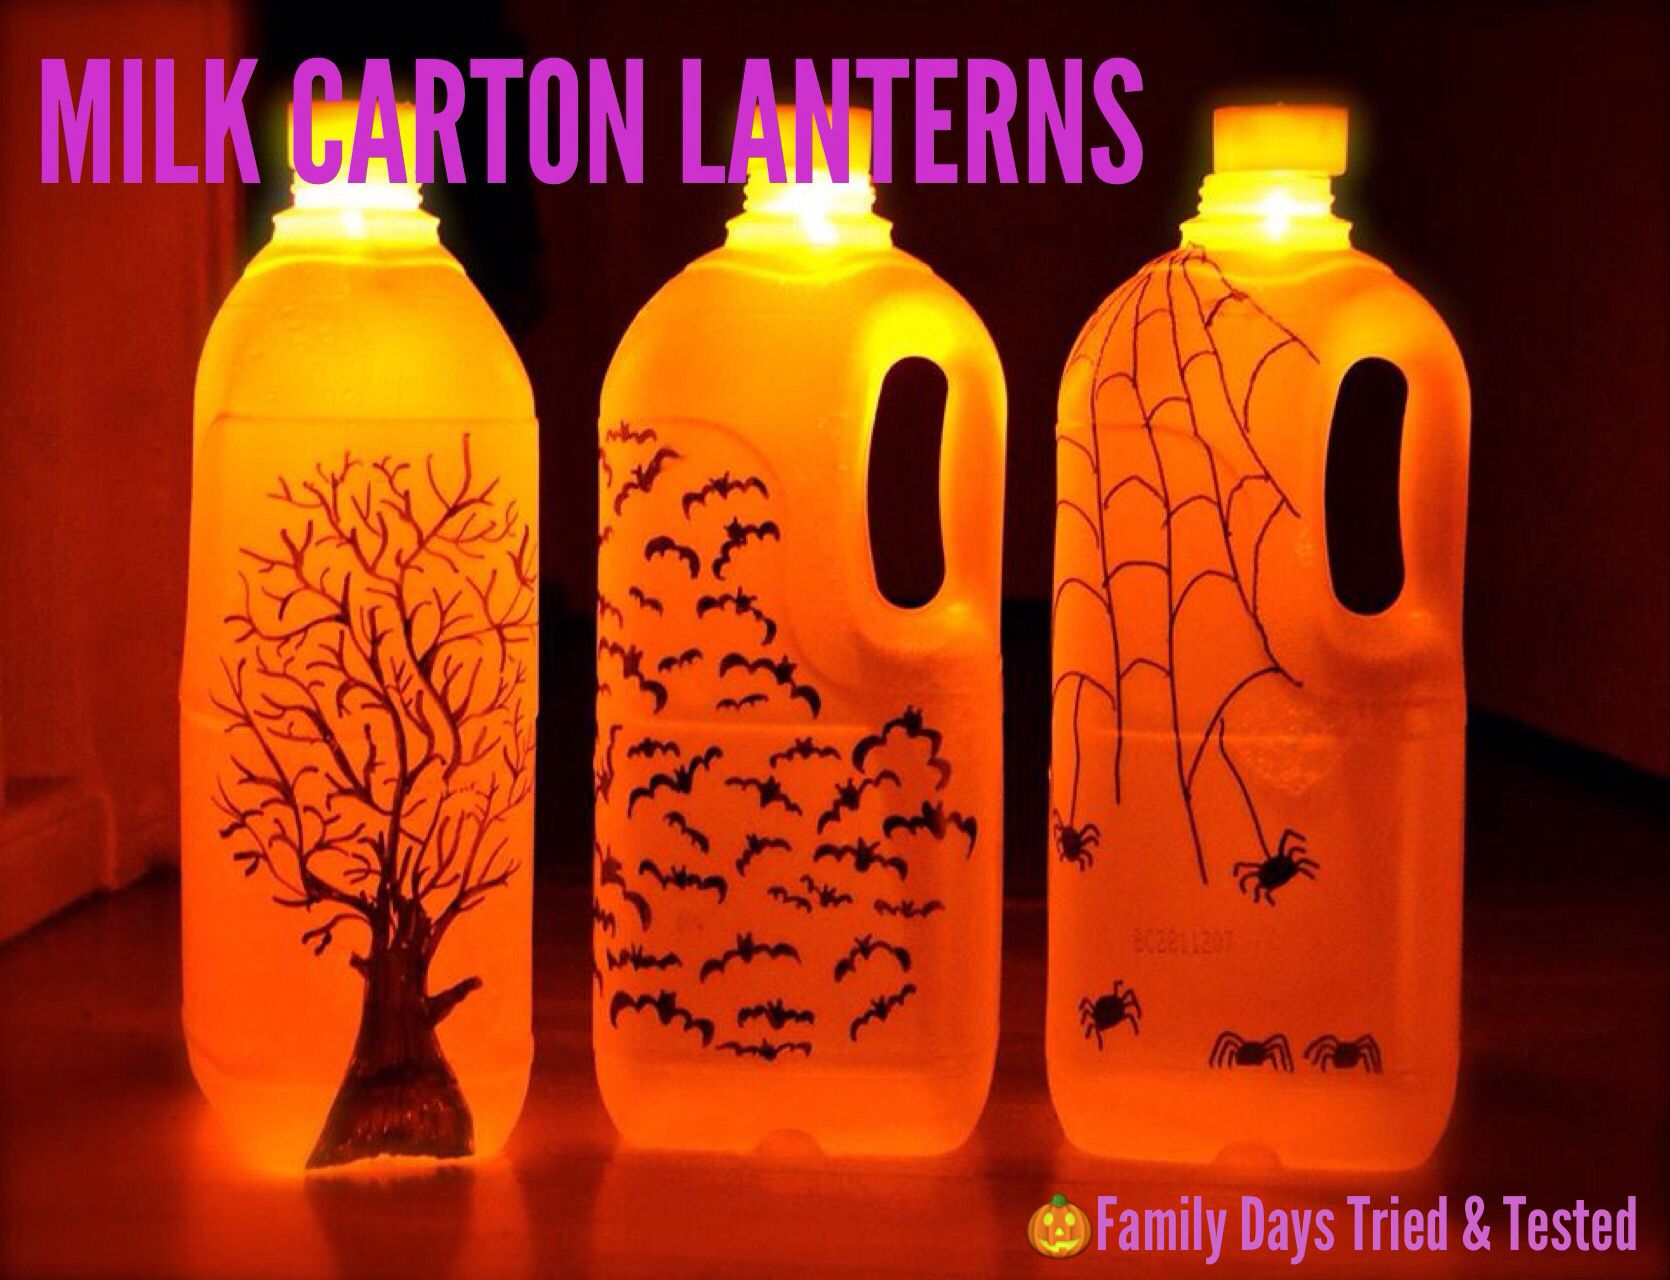 Decorate Milk Cartons With Sharpie Marker Pens And Place A Battery Operated Candle On The Top Milk Carton Crafts Milk Bottle Craft Halloween Bottles